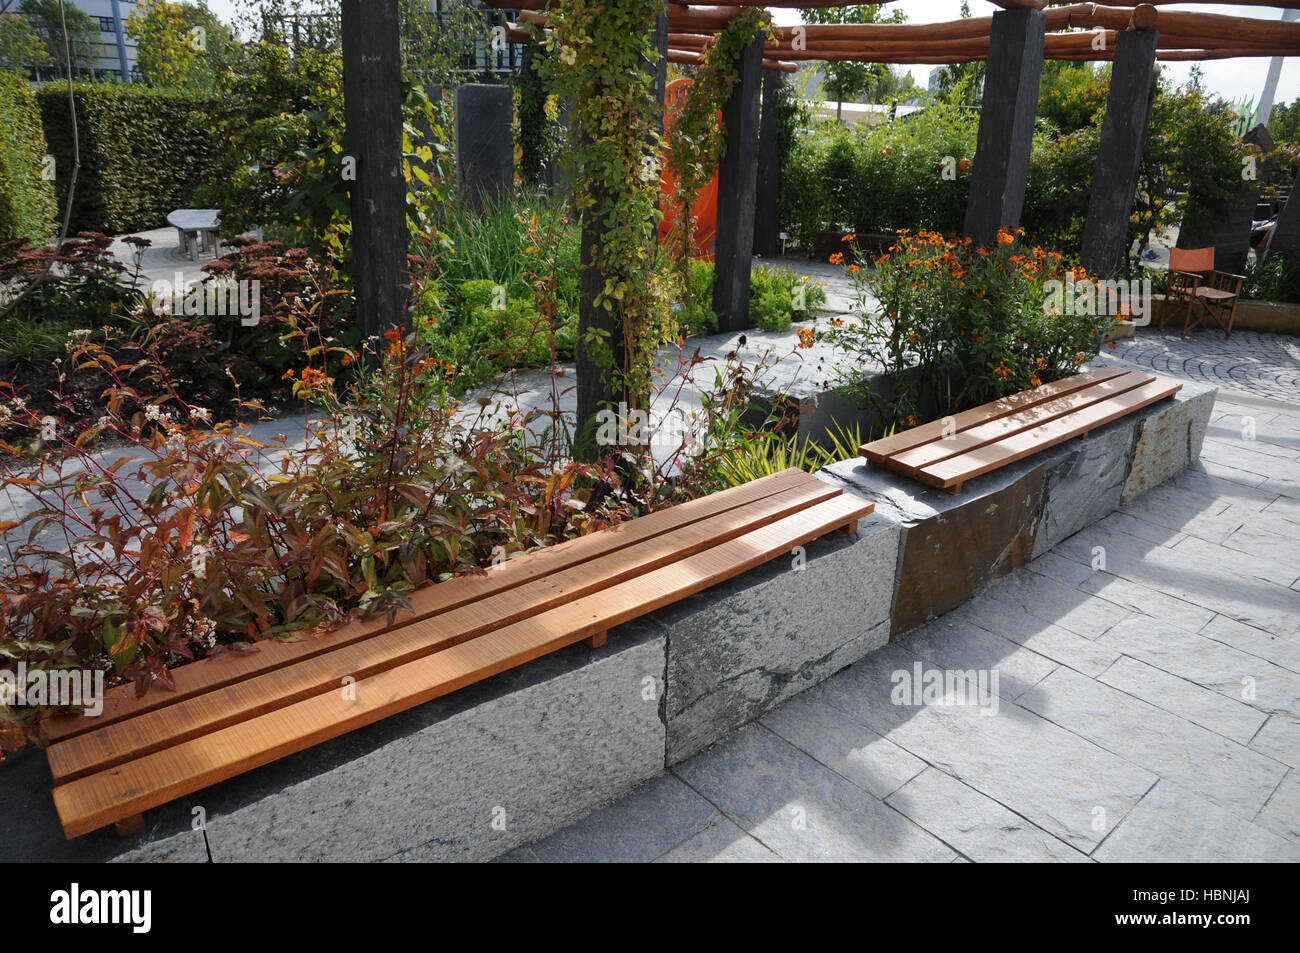 Sitzbank Granit Garden With Bench Made Of Stone And Wood Stock Photo 127709194